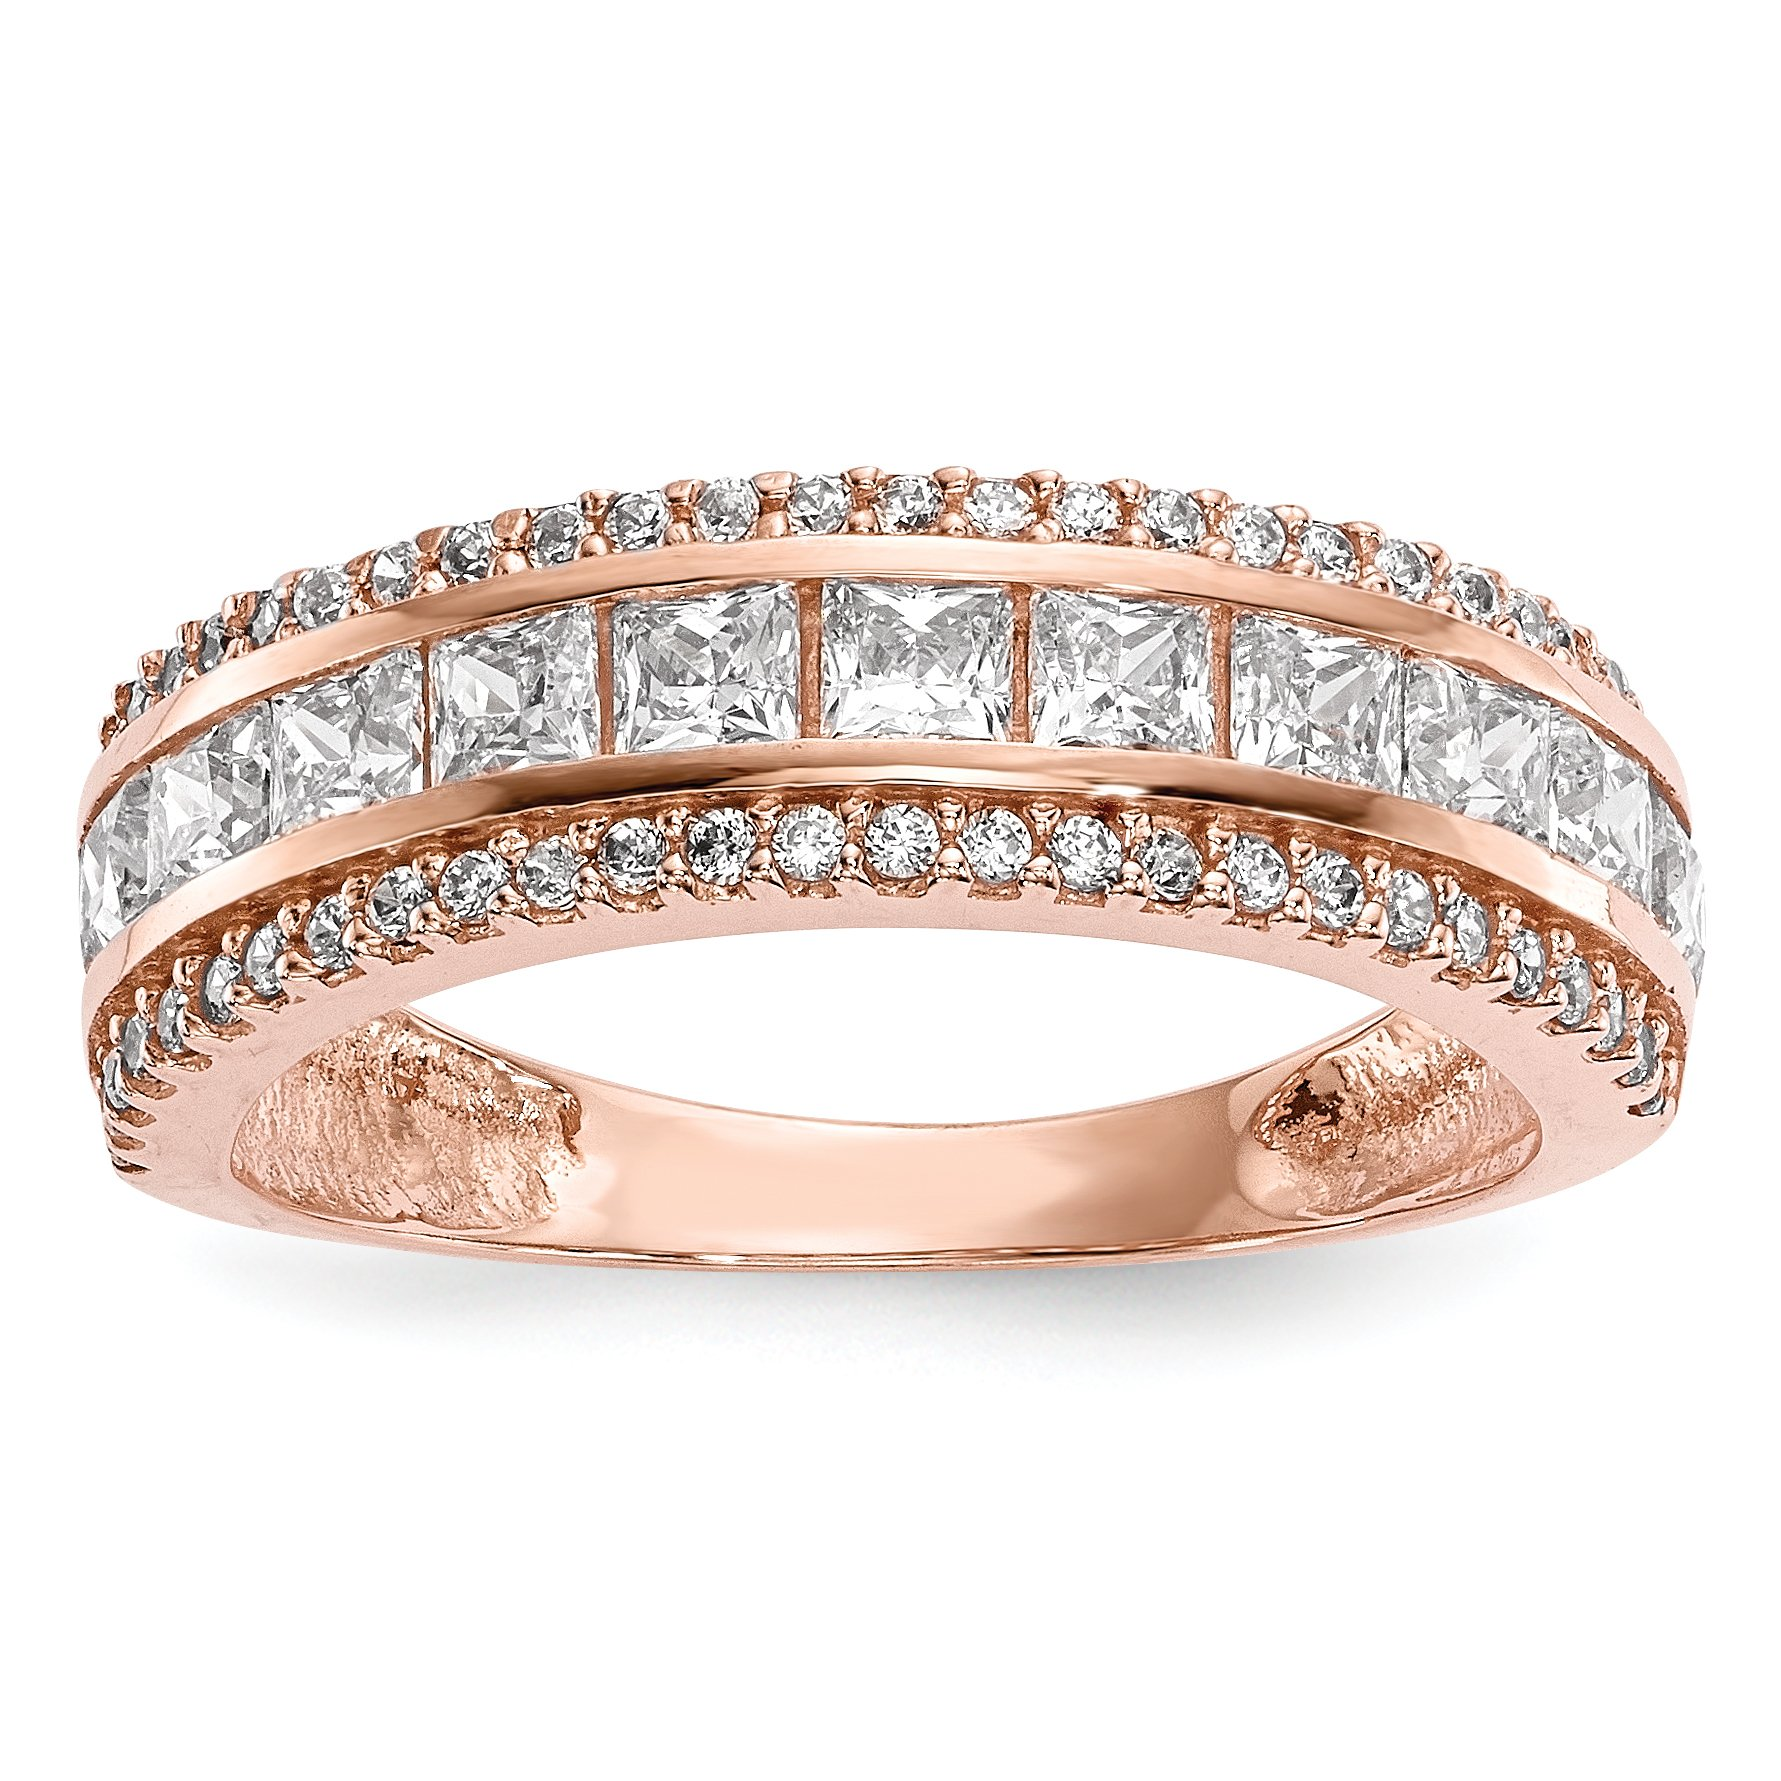 ICE CARATS 10k Tiara Collection Rose Gold Cubic Zirconia Cz Band Ring Size 7.00 Yc Fine Jewelry Gift Set For Women Heart